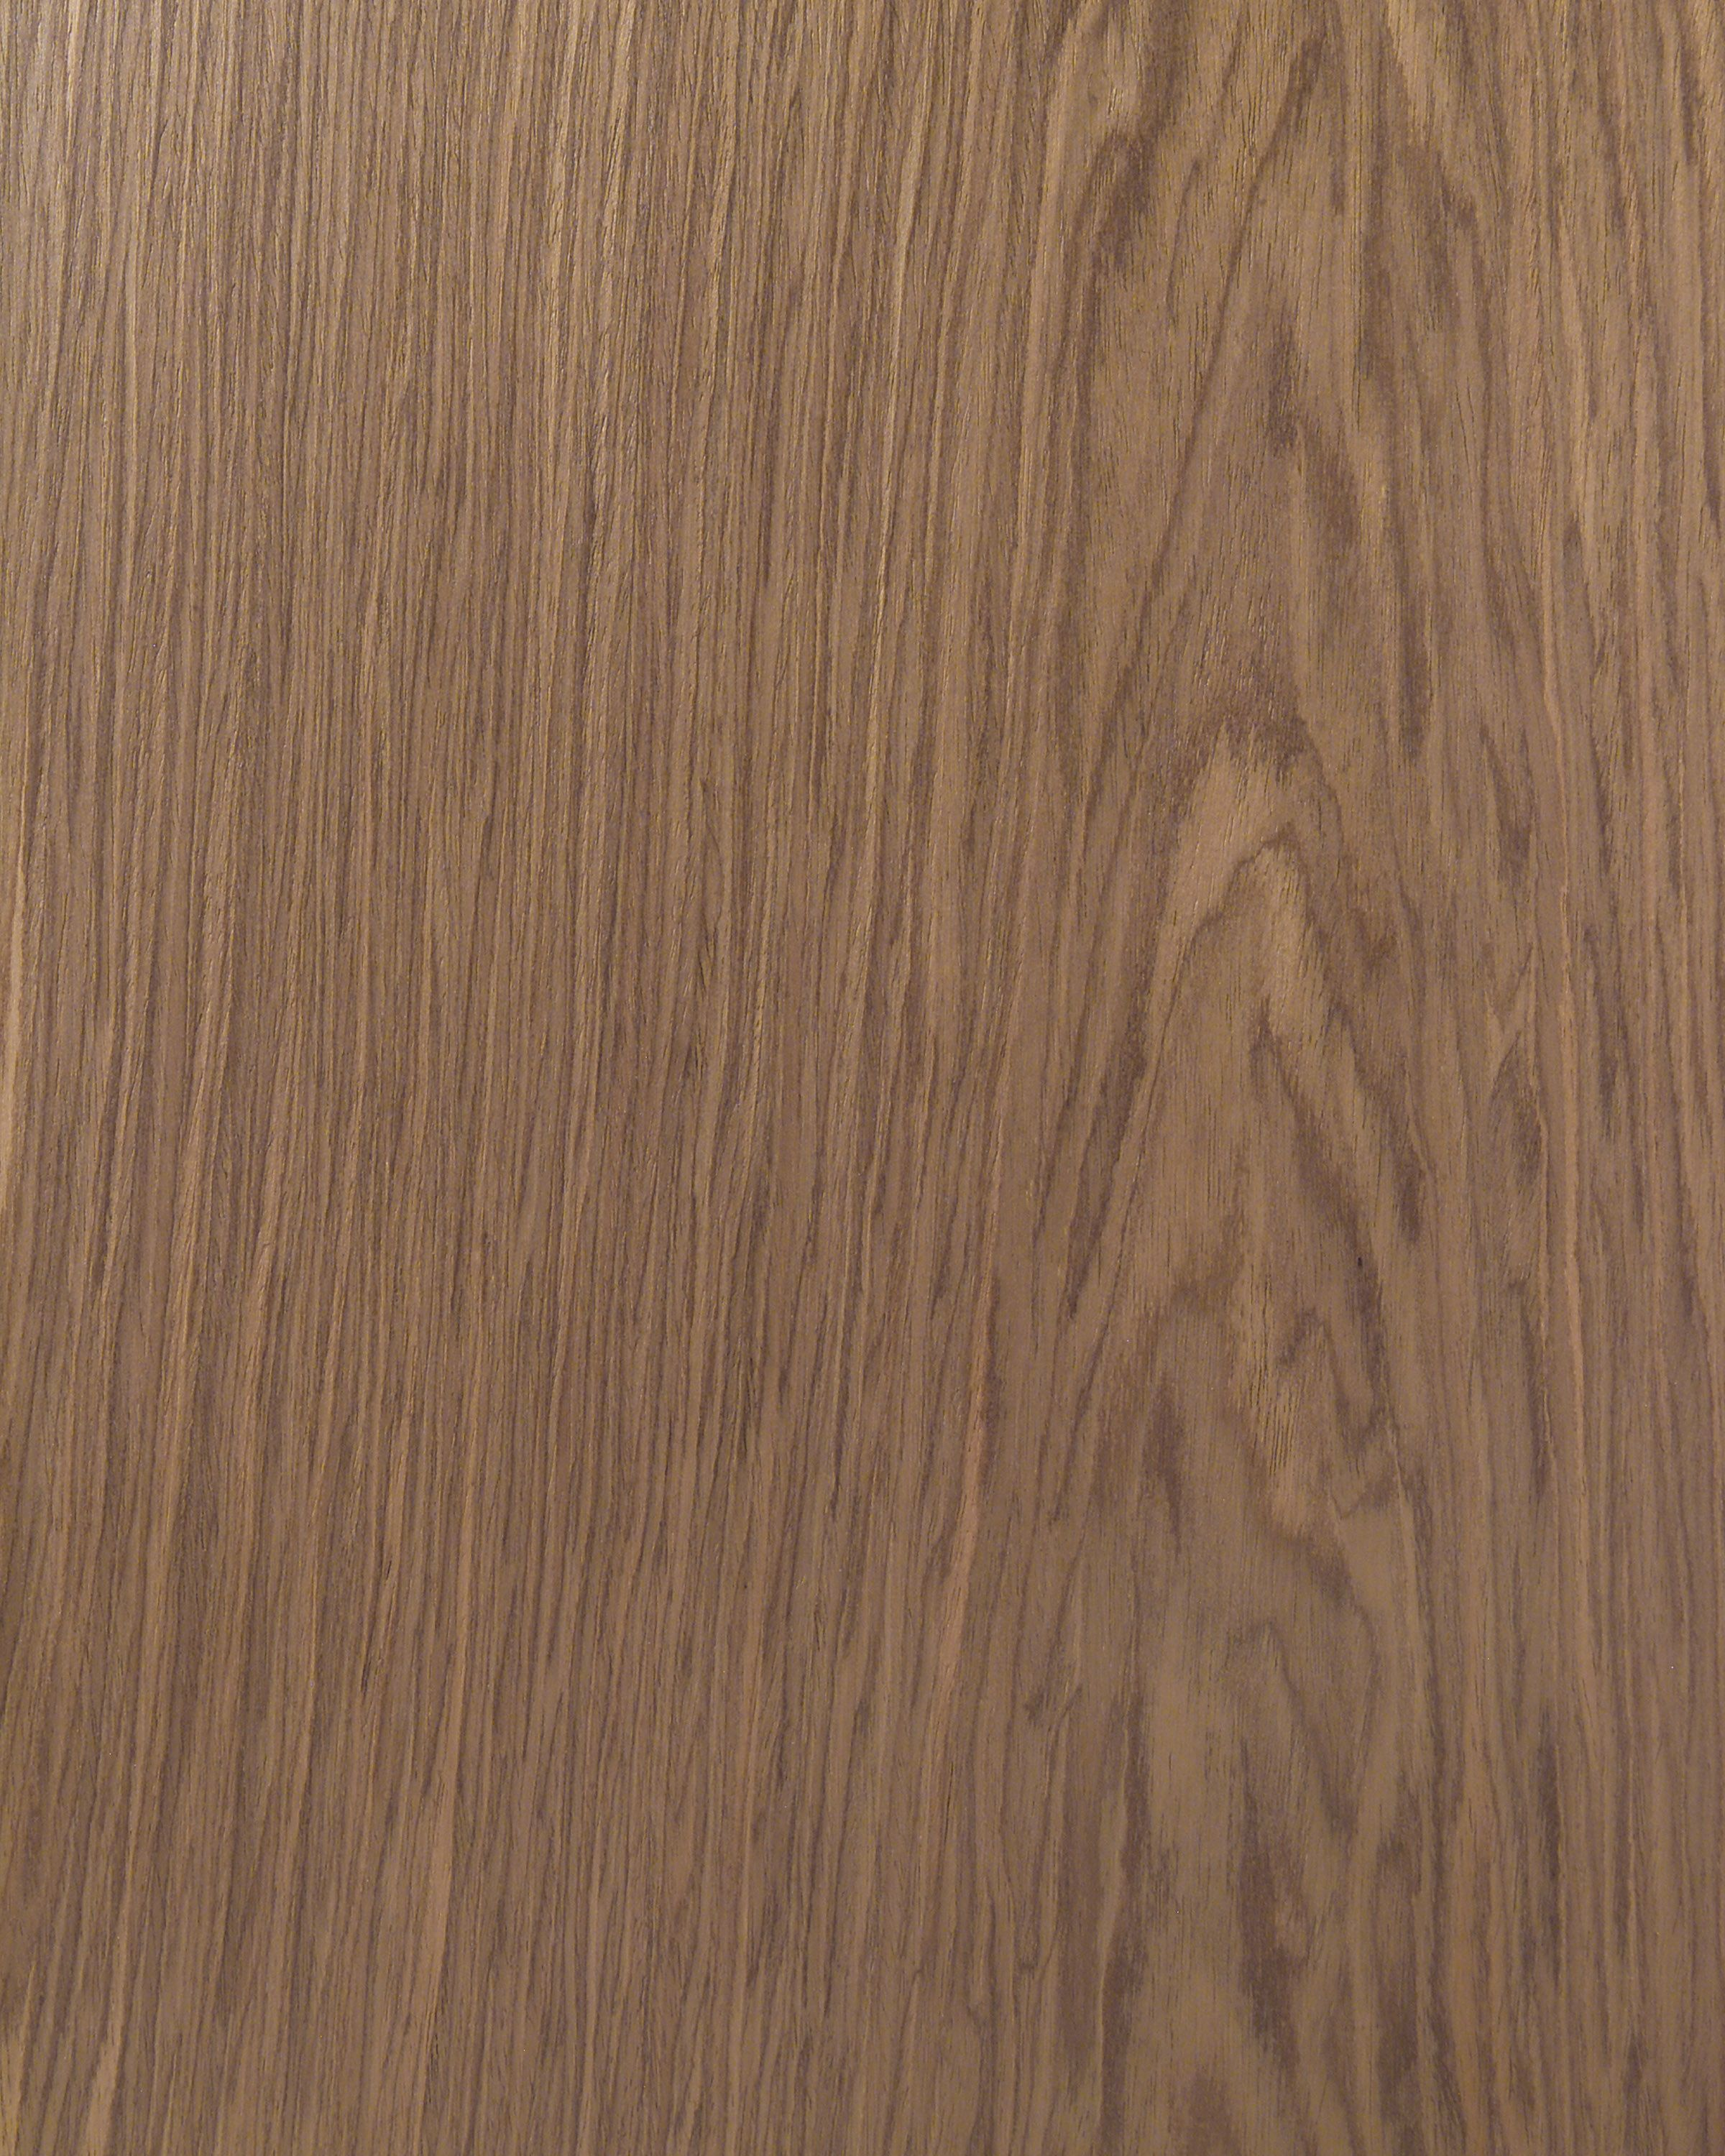 Dark brown wood veneer dark brown wood veneer google search - American Walnut Veneer Google Search Abstract Animalswood